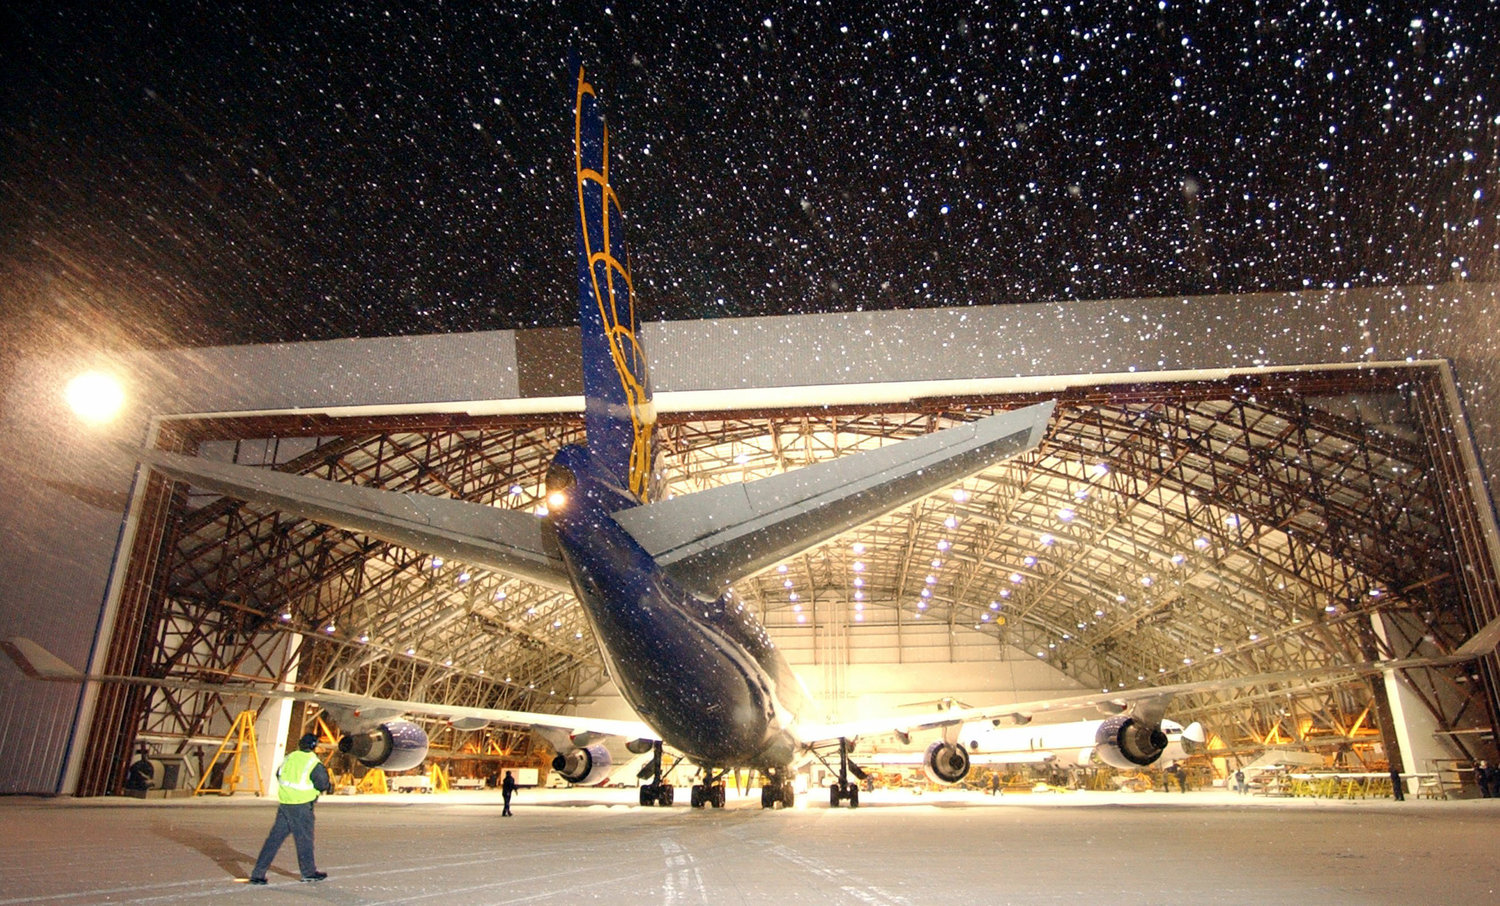 ROOM TO WORK — A Atlas Air 747 is pulled into a hangar at Empire Aero Center Monday, January 19, 2004 in this file photo. Oneida County officials and lawmakers hope to update utilities in the building to make its use economical for prospective tenants in the aviation industry. (Sentinel photo by John Clifford)